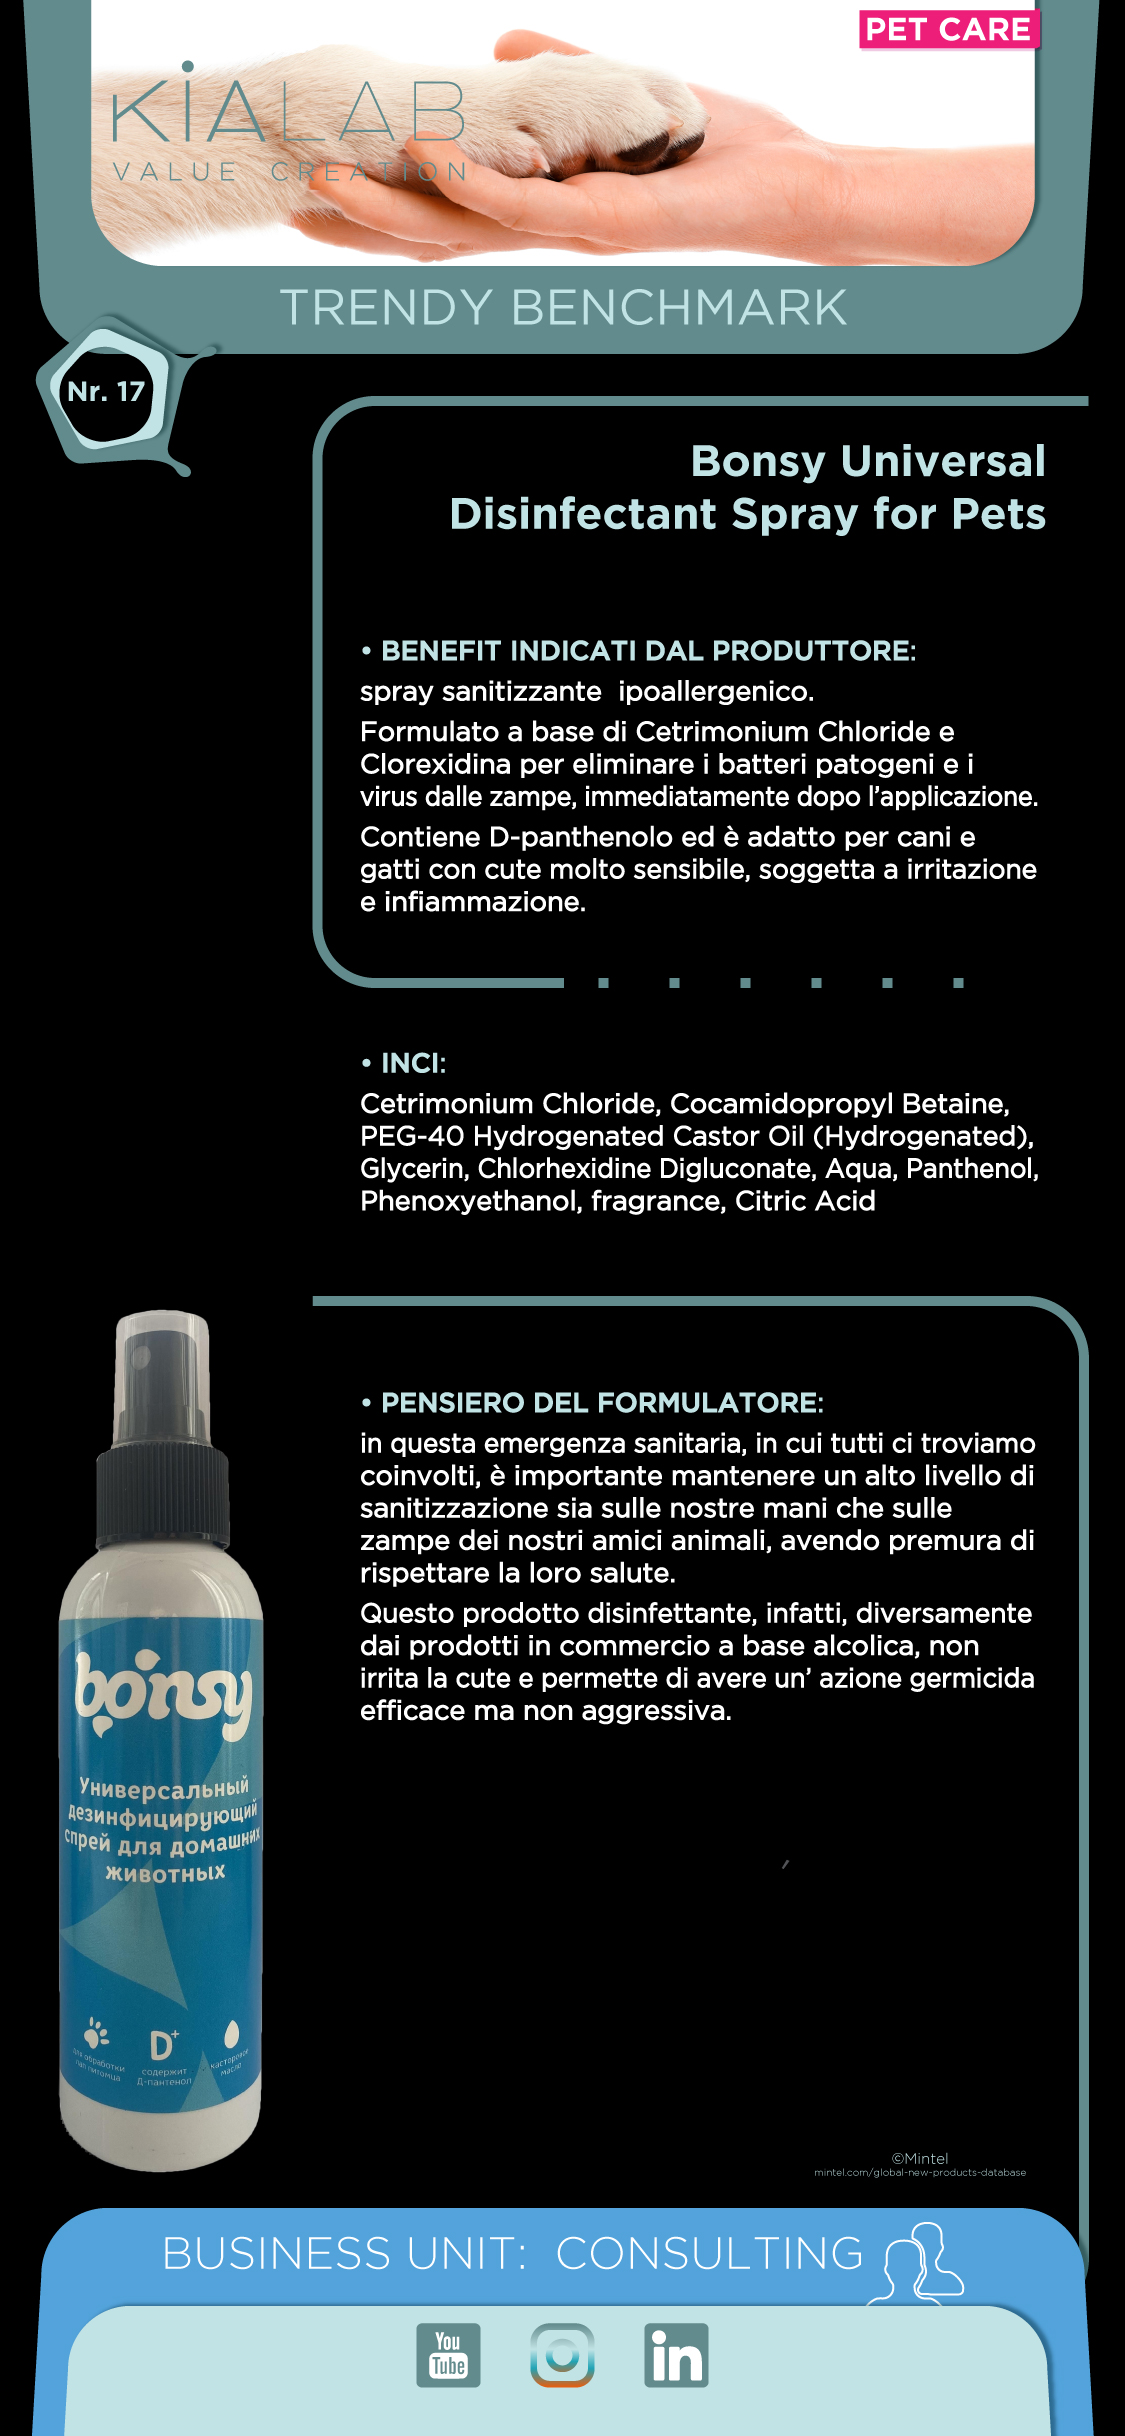 Trendy Benchmark Kialab Bonsy Universal® Disinfectant Spray fot Pets